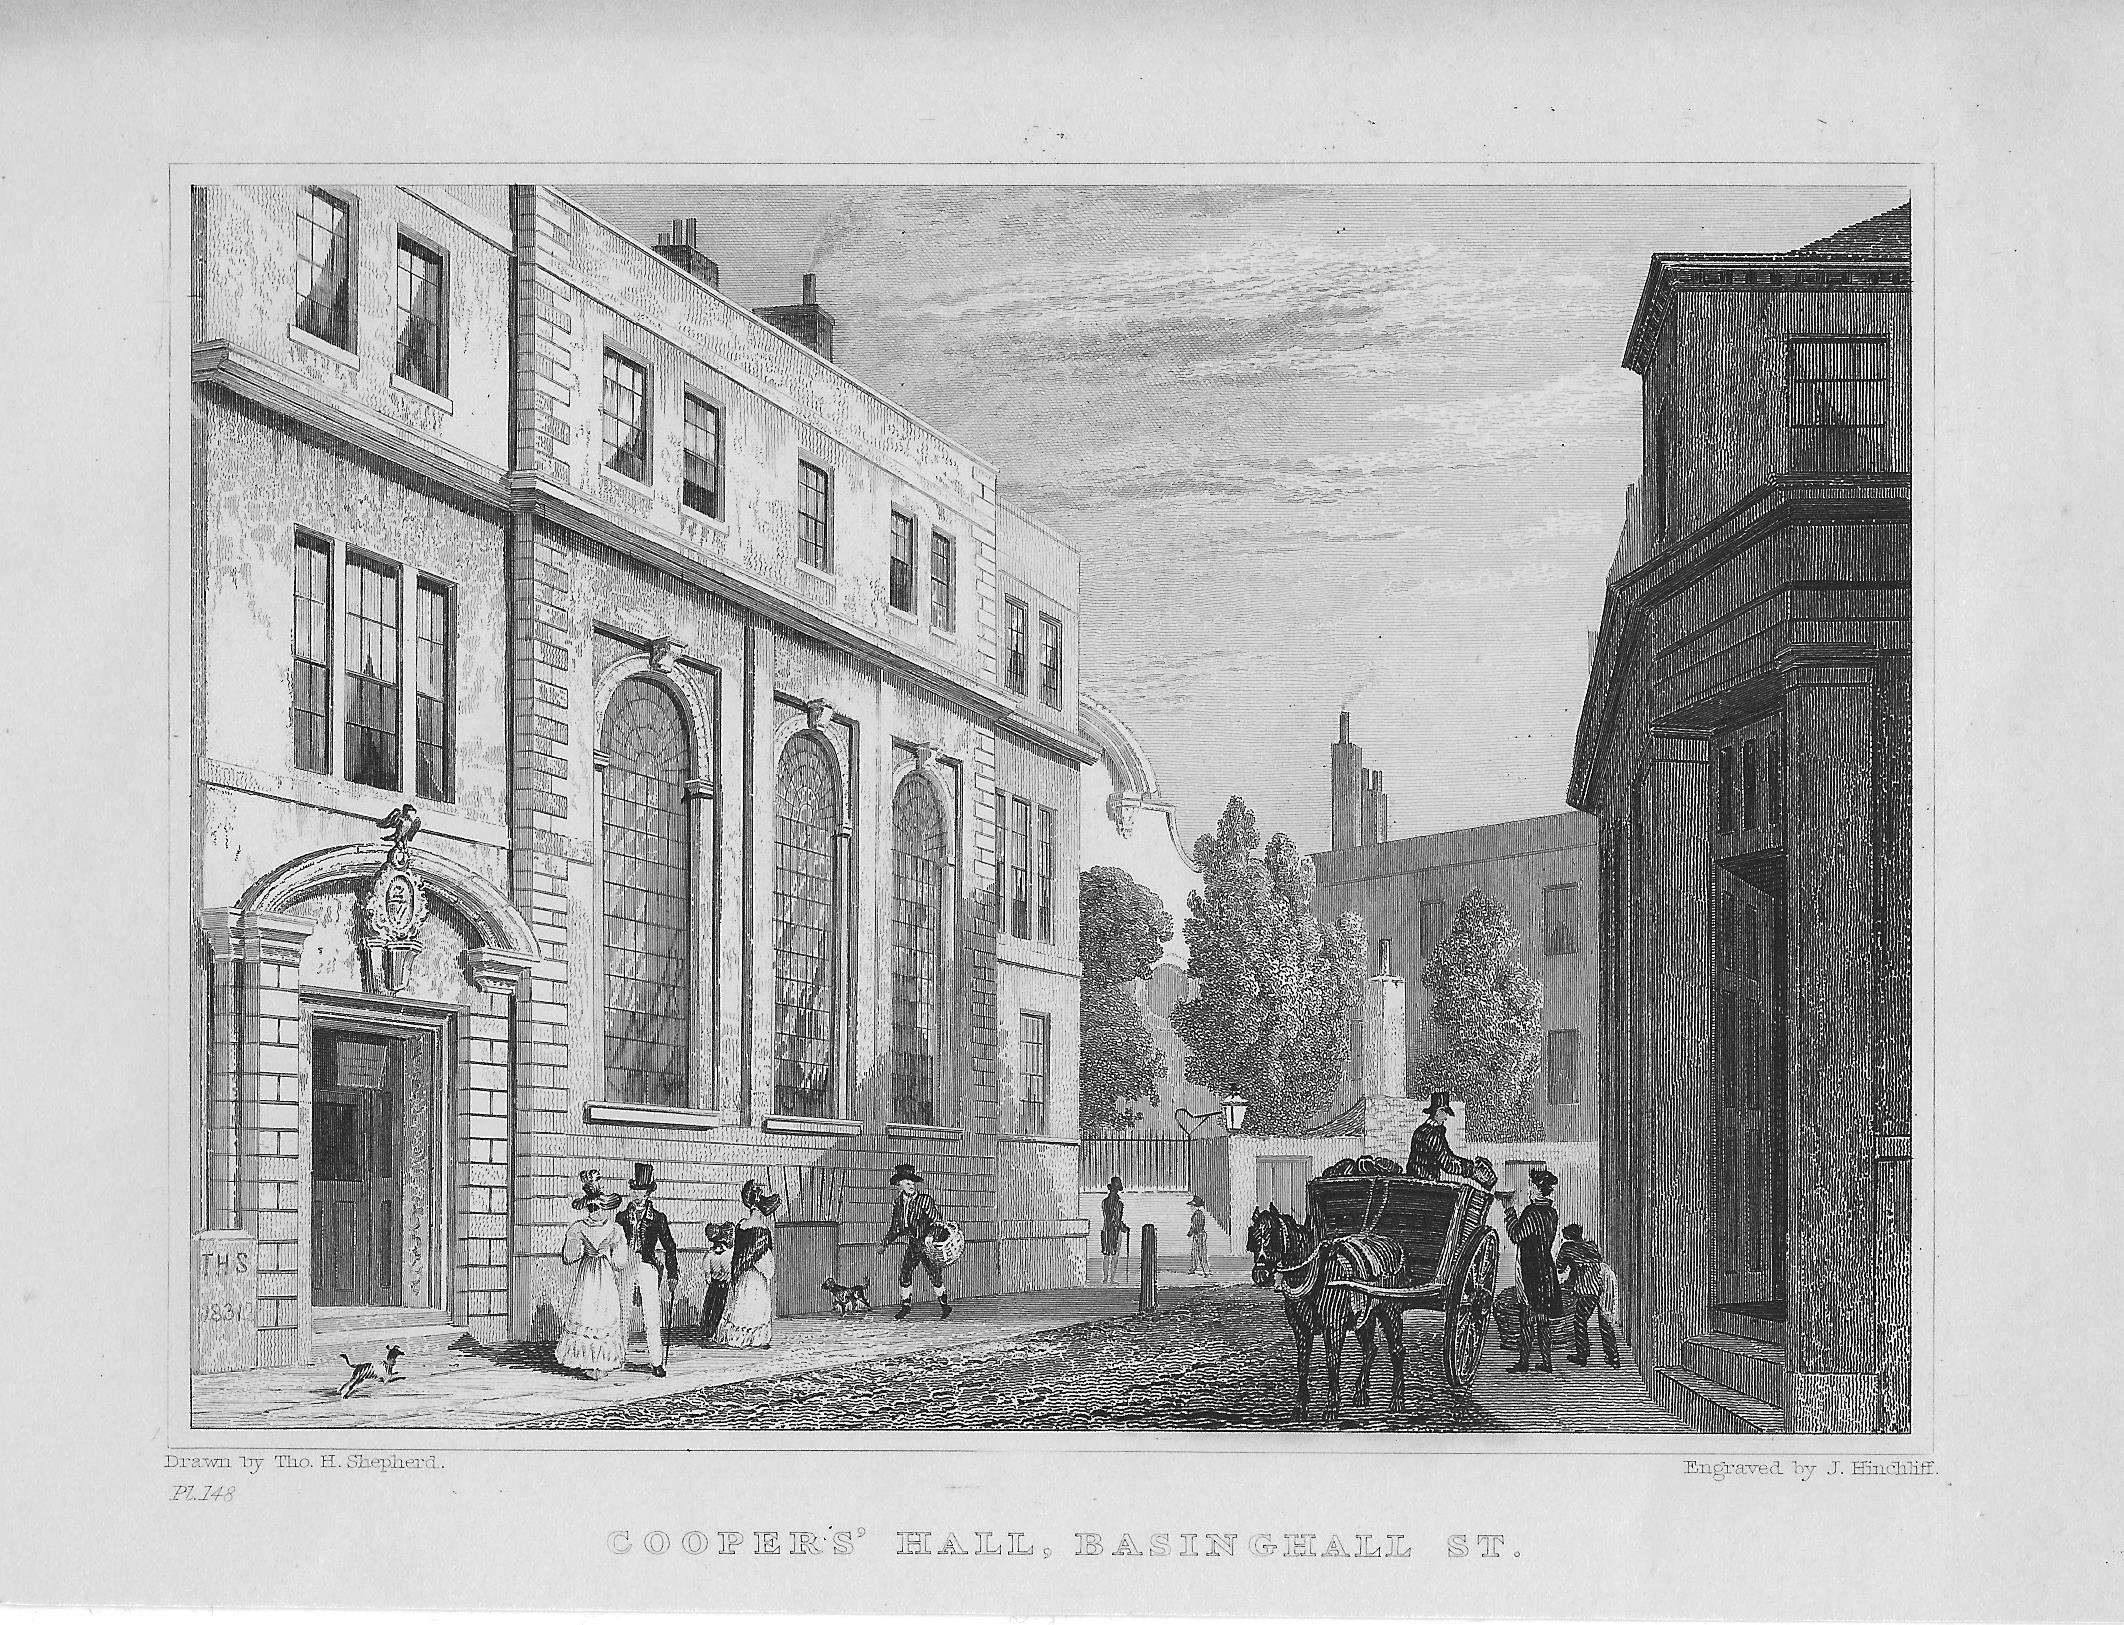 Coopers Hall Basinghall Street London Frontispiece